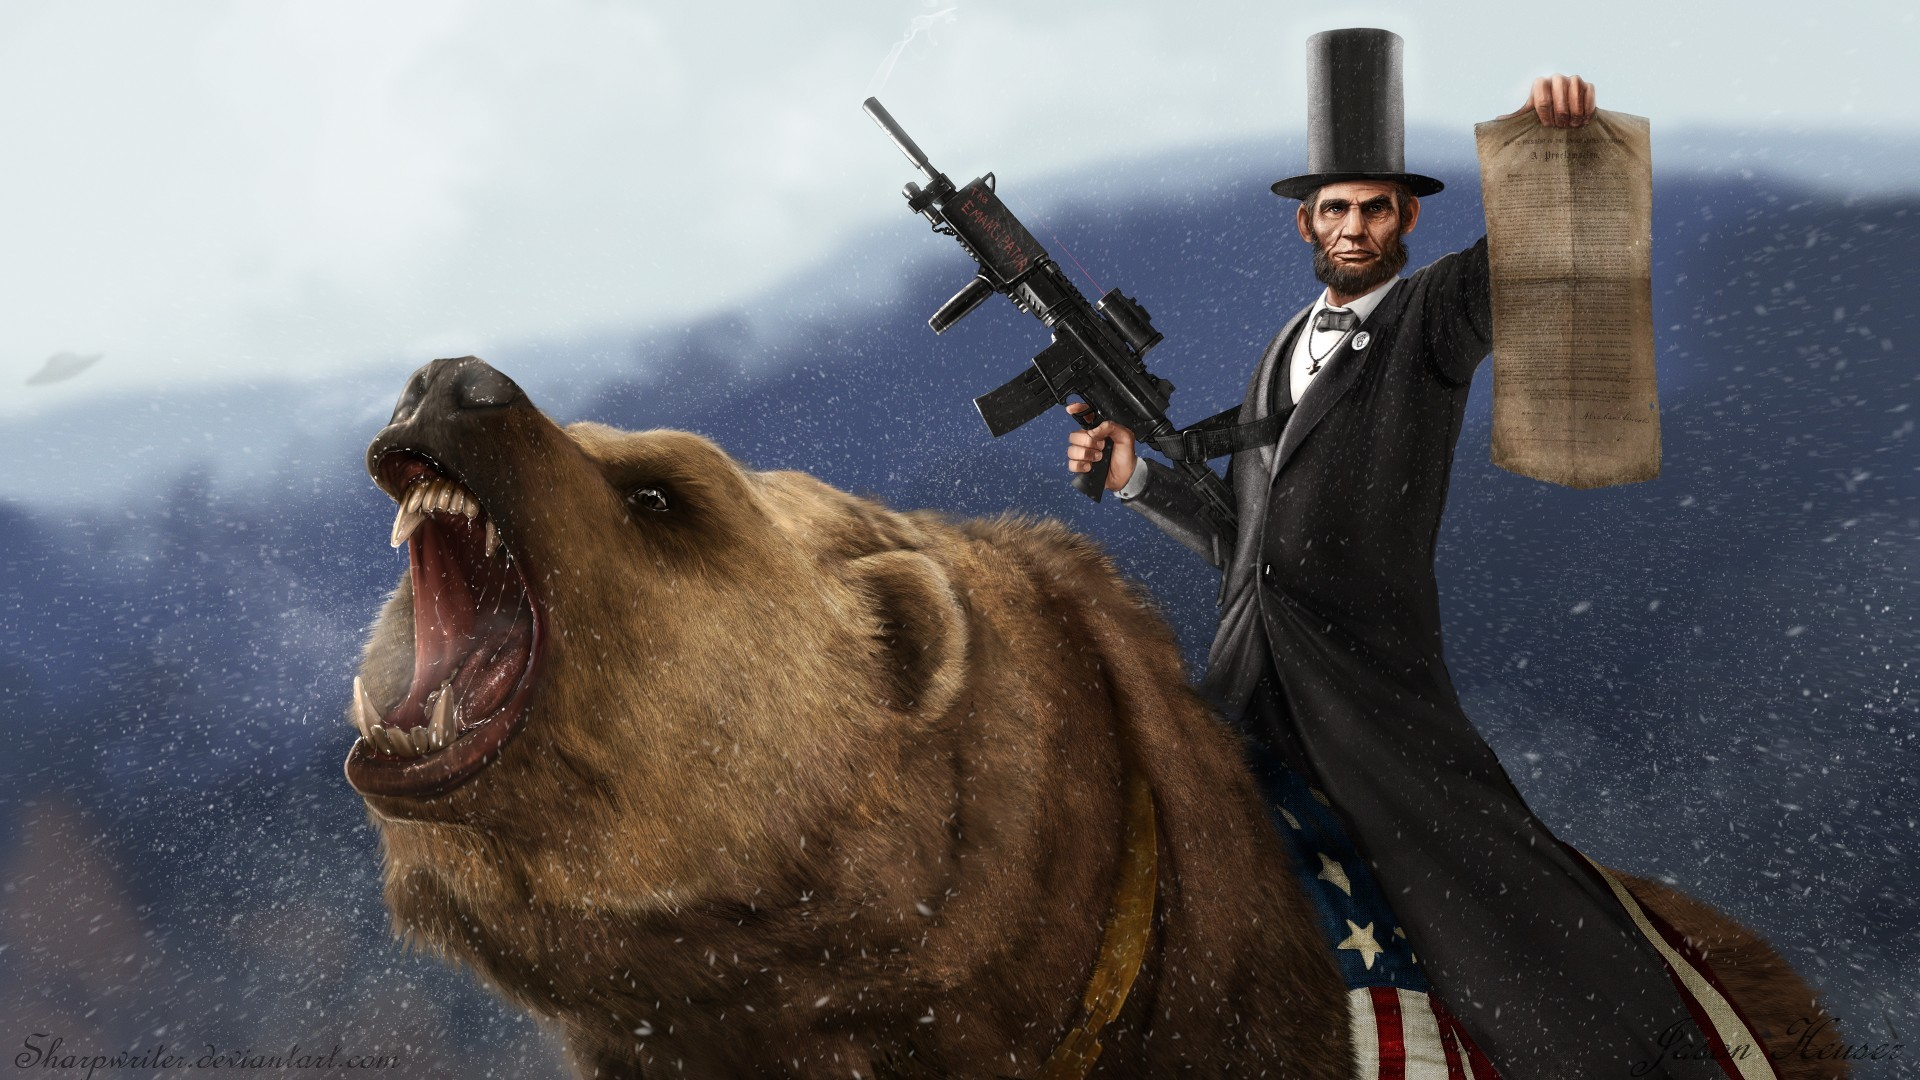 Abraham Lincoln riding the infamous anti-slavery bear